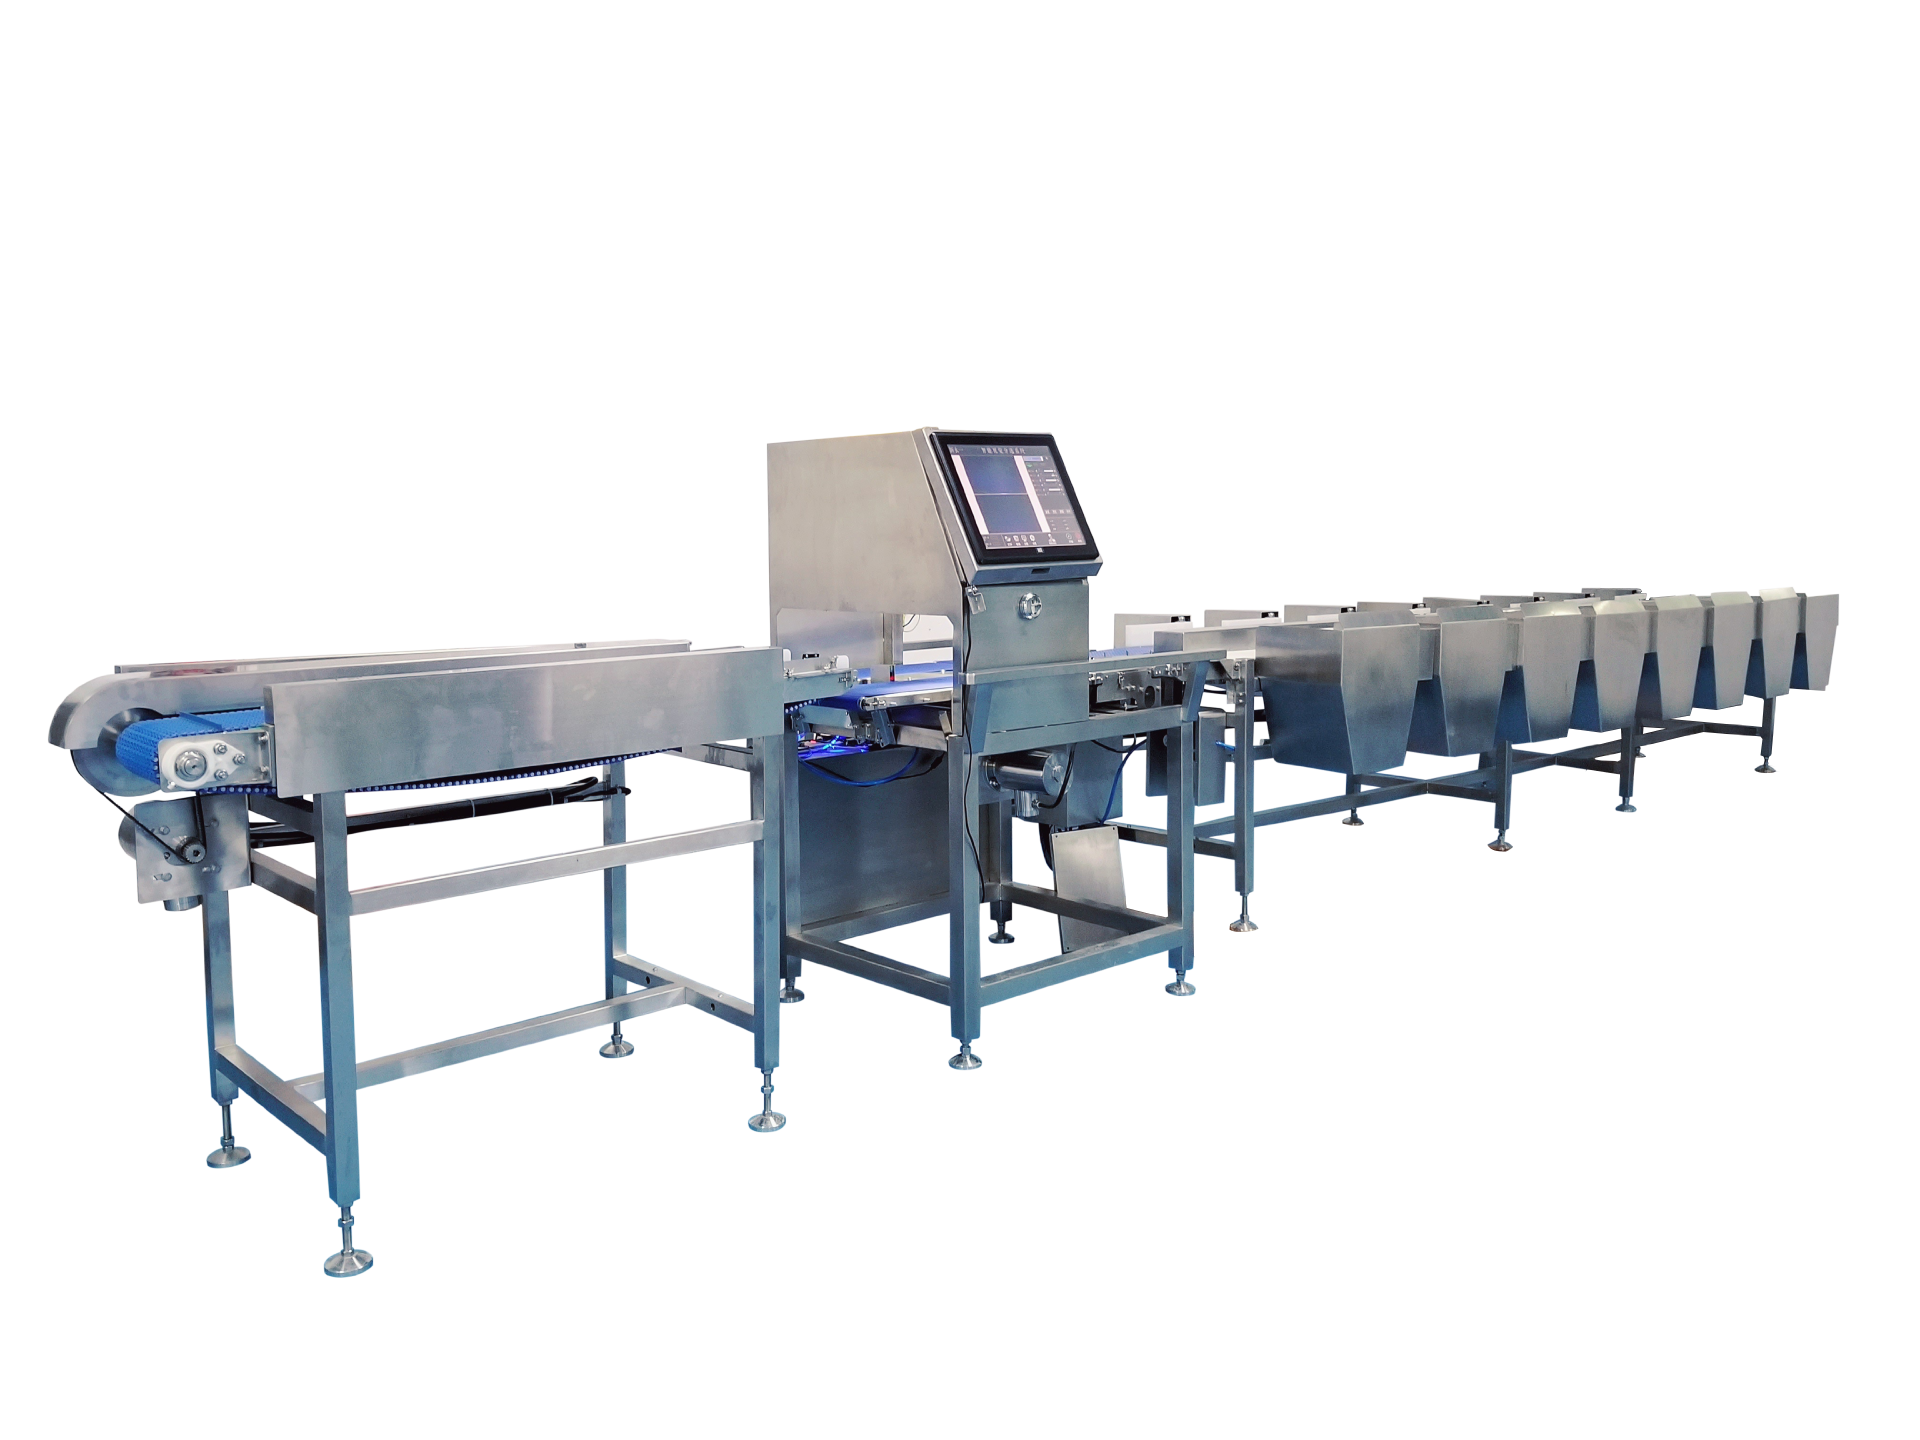 Easyweigh Equipment and FOODMAN® in Interpack 2020 Düsseldor